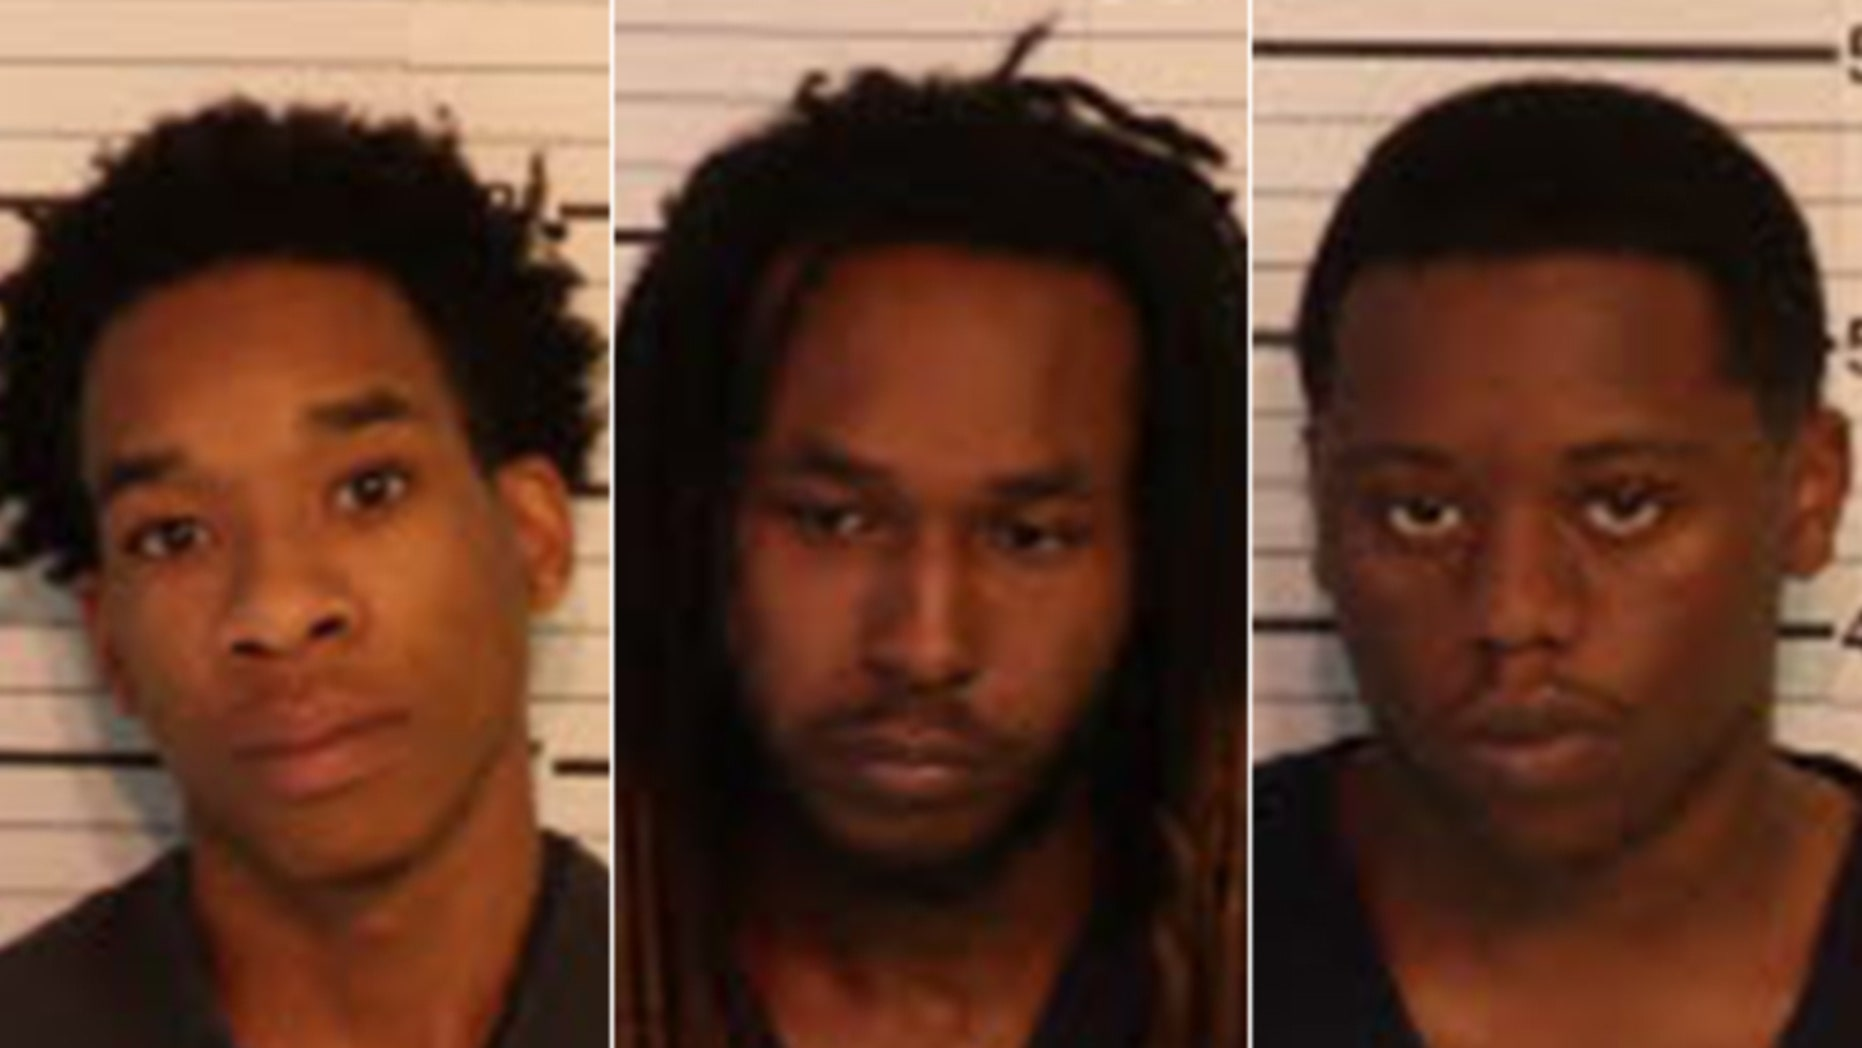 Mugshots for Carlos Craft, 21, Demetrius Harris, 23, and Marcus Brown, 19.